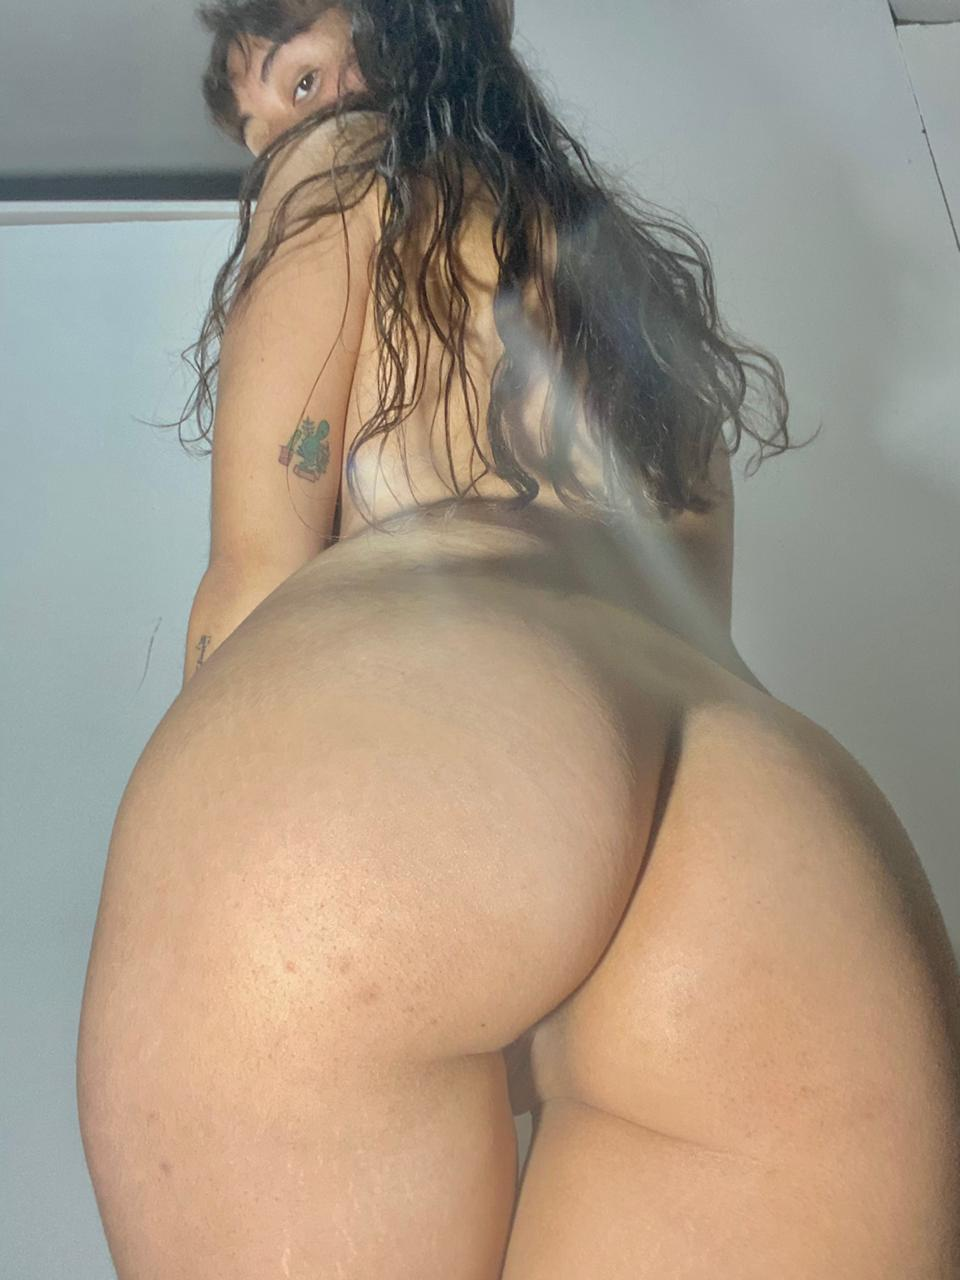 Can I Do More Squats At Your Face? 21